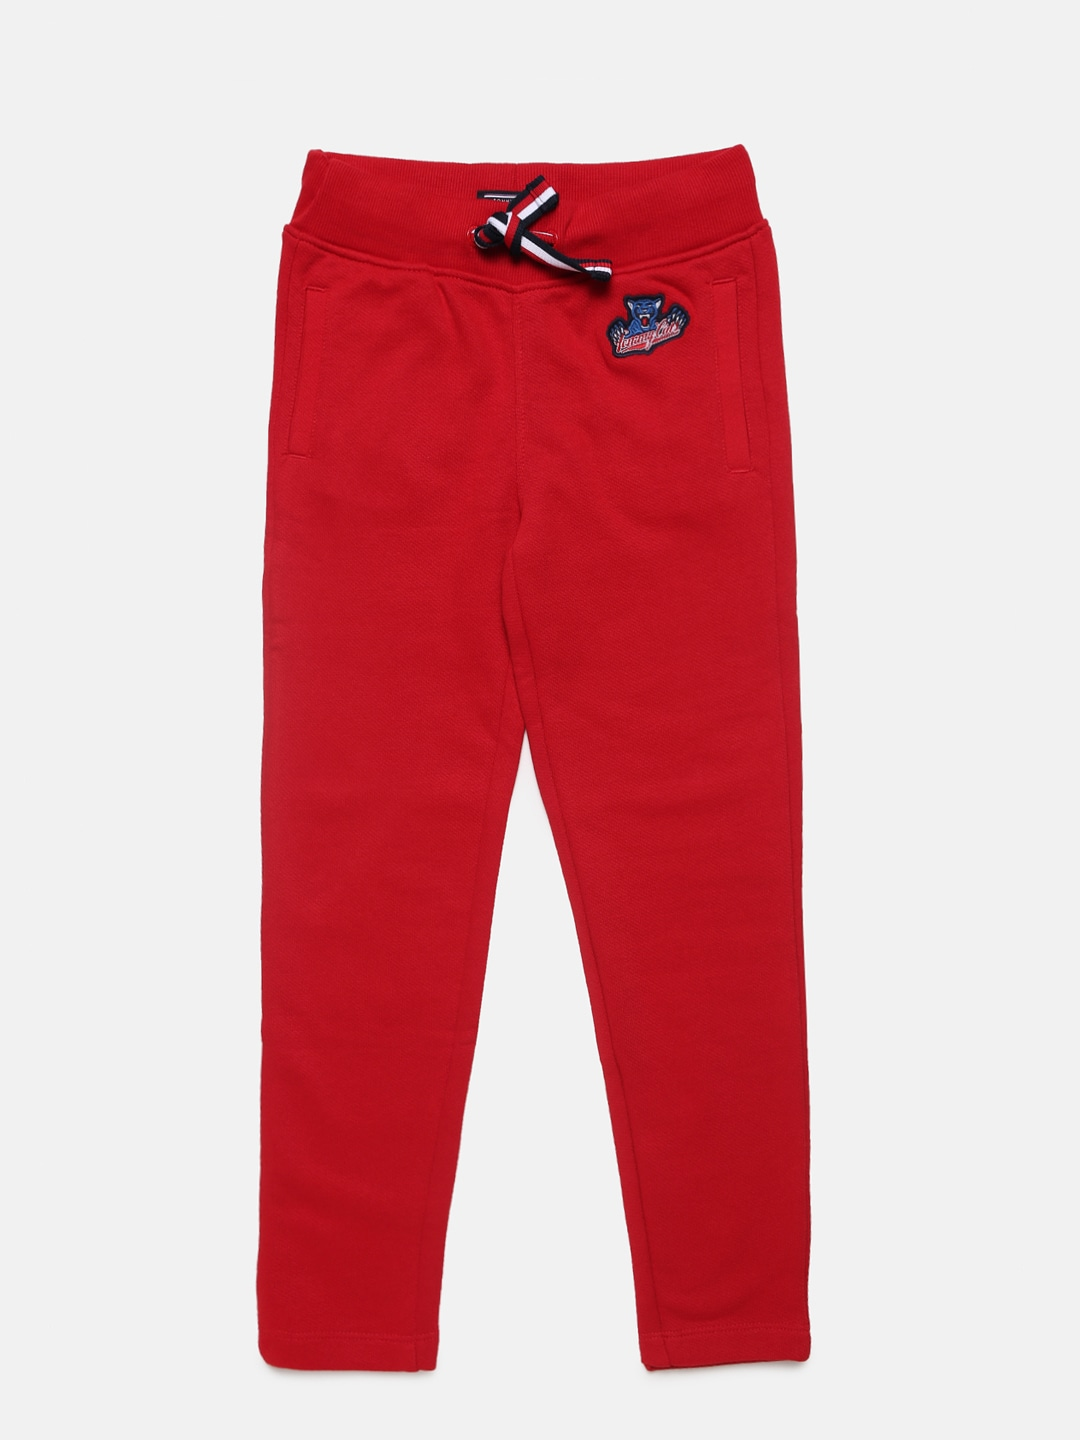 65feb284 Boys Track Pants- Buy Track Pants for Boys online in India